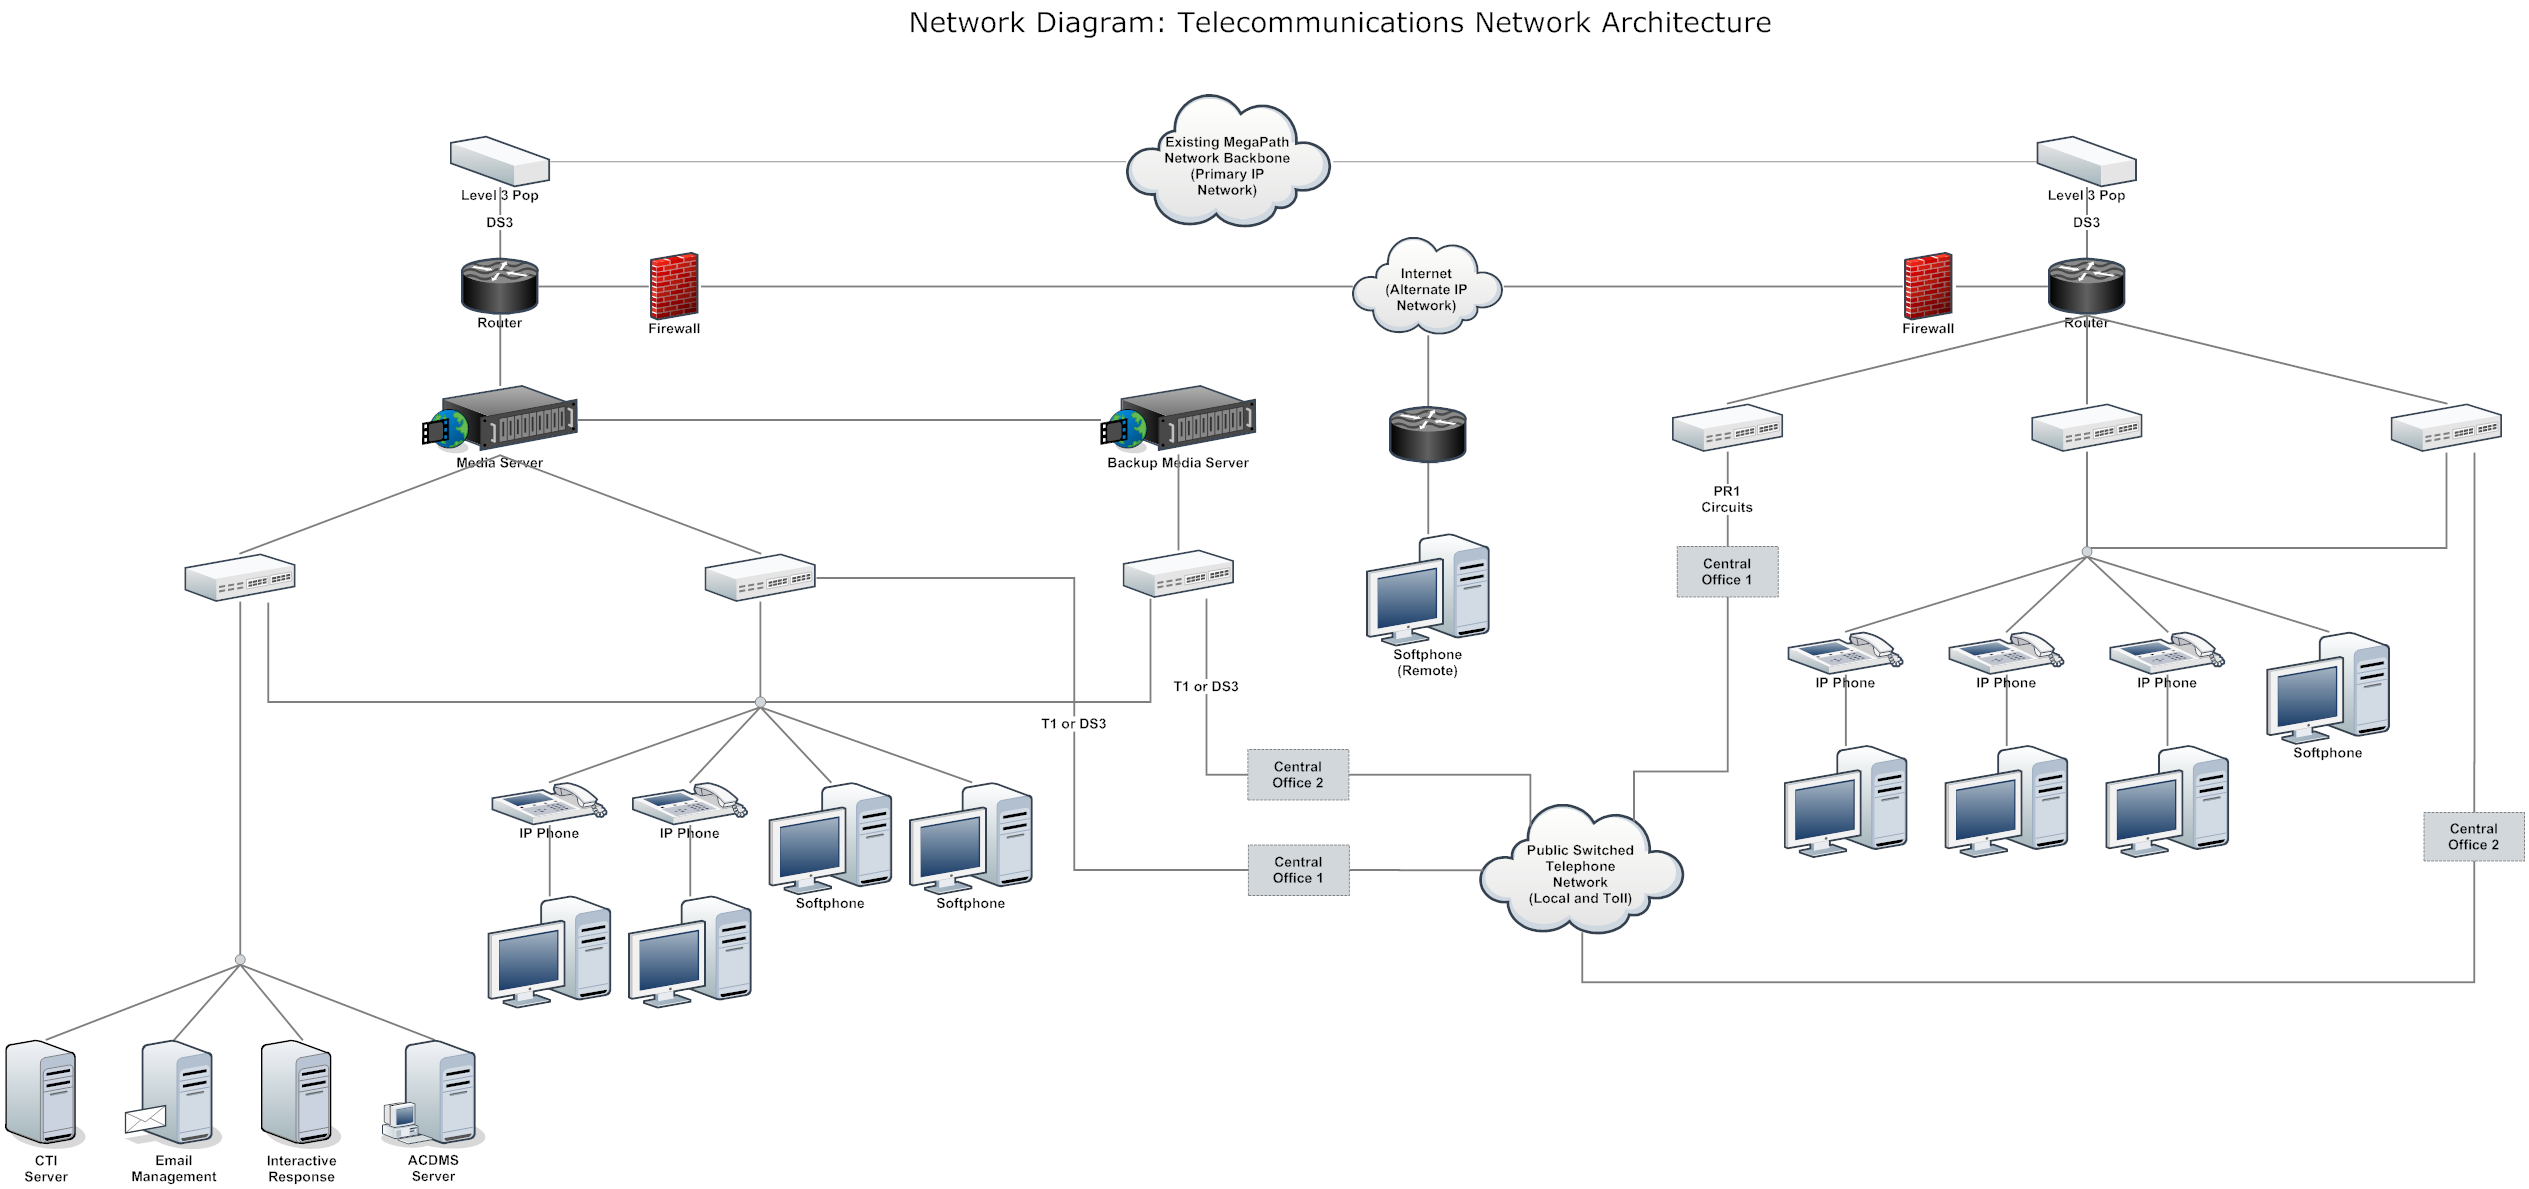 medium resolution of network diagram example telecommunnications network architecture